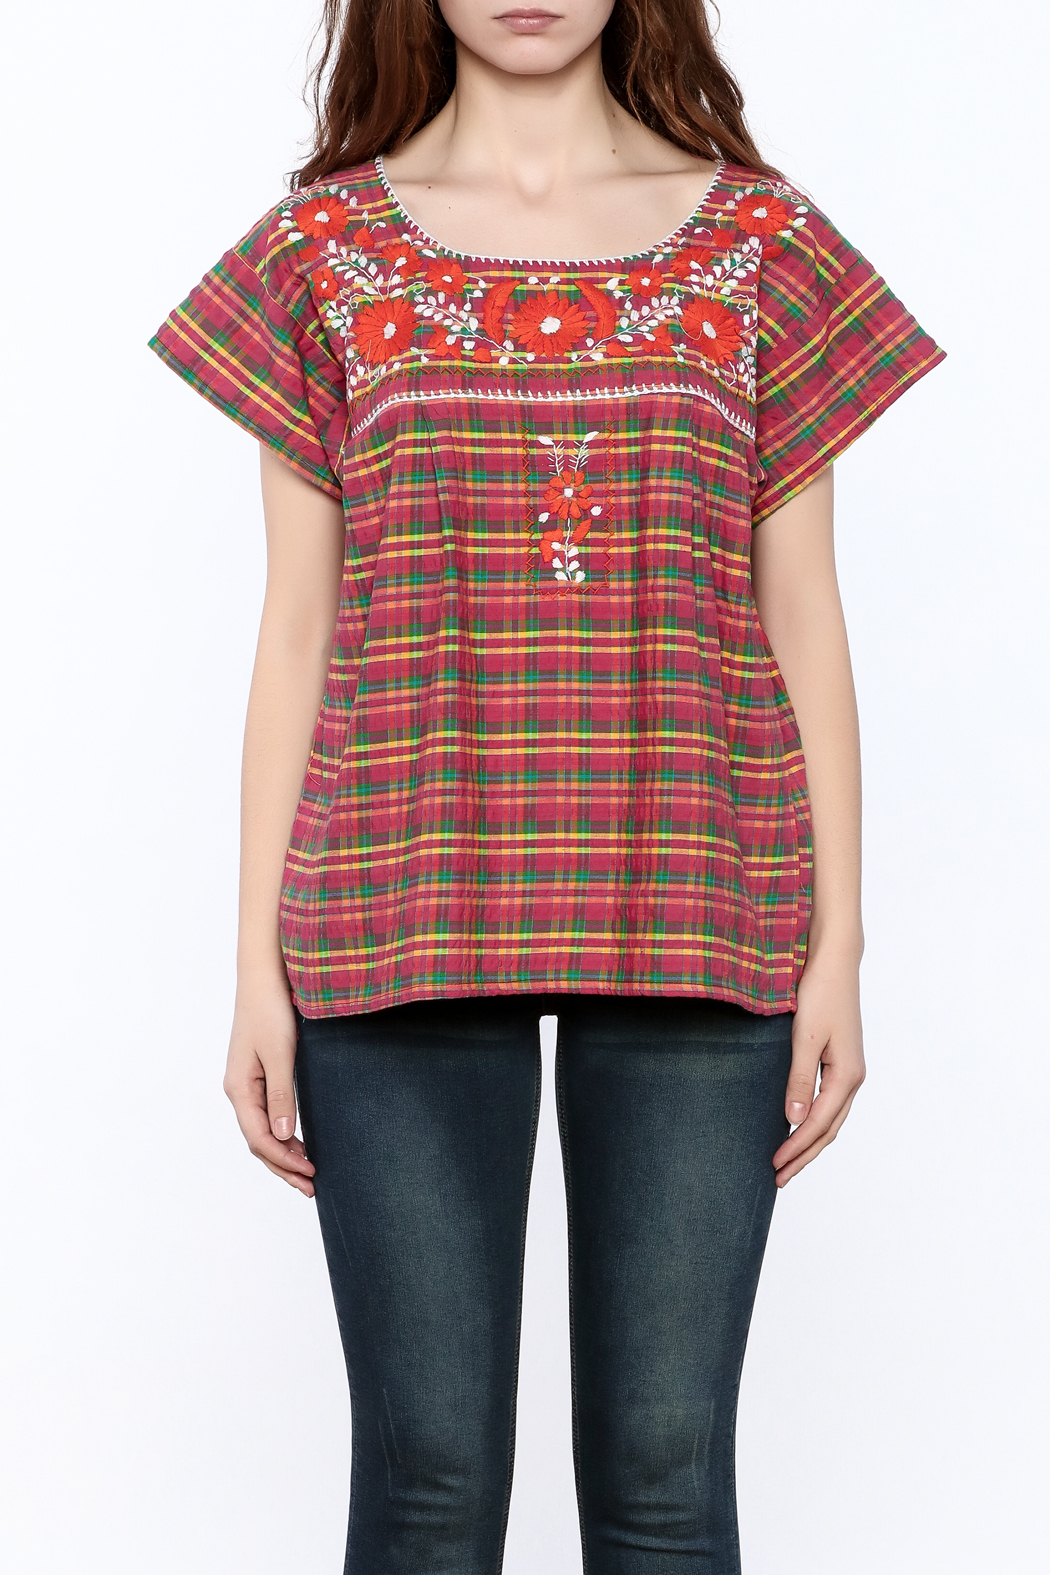 Nativa Plaid Xochitl Blouse - Side Cropped Image